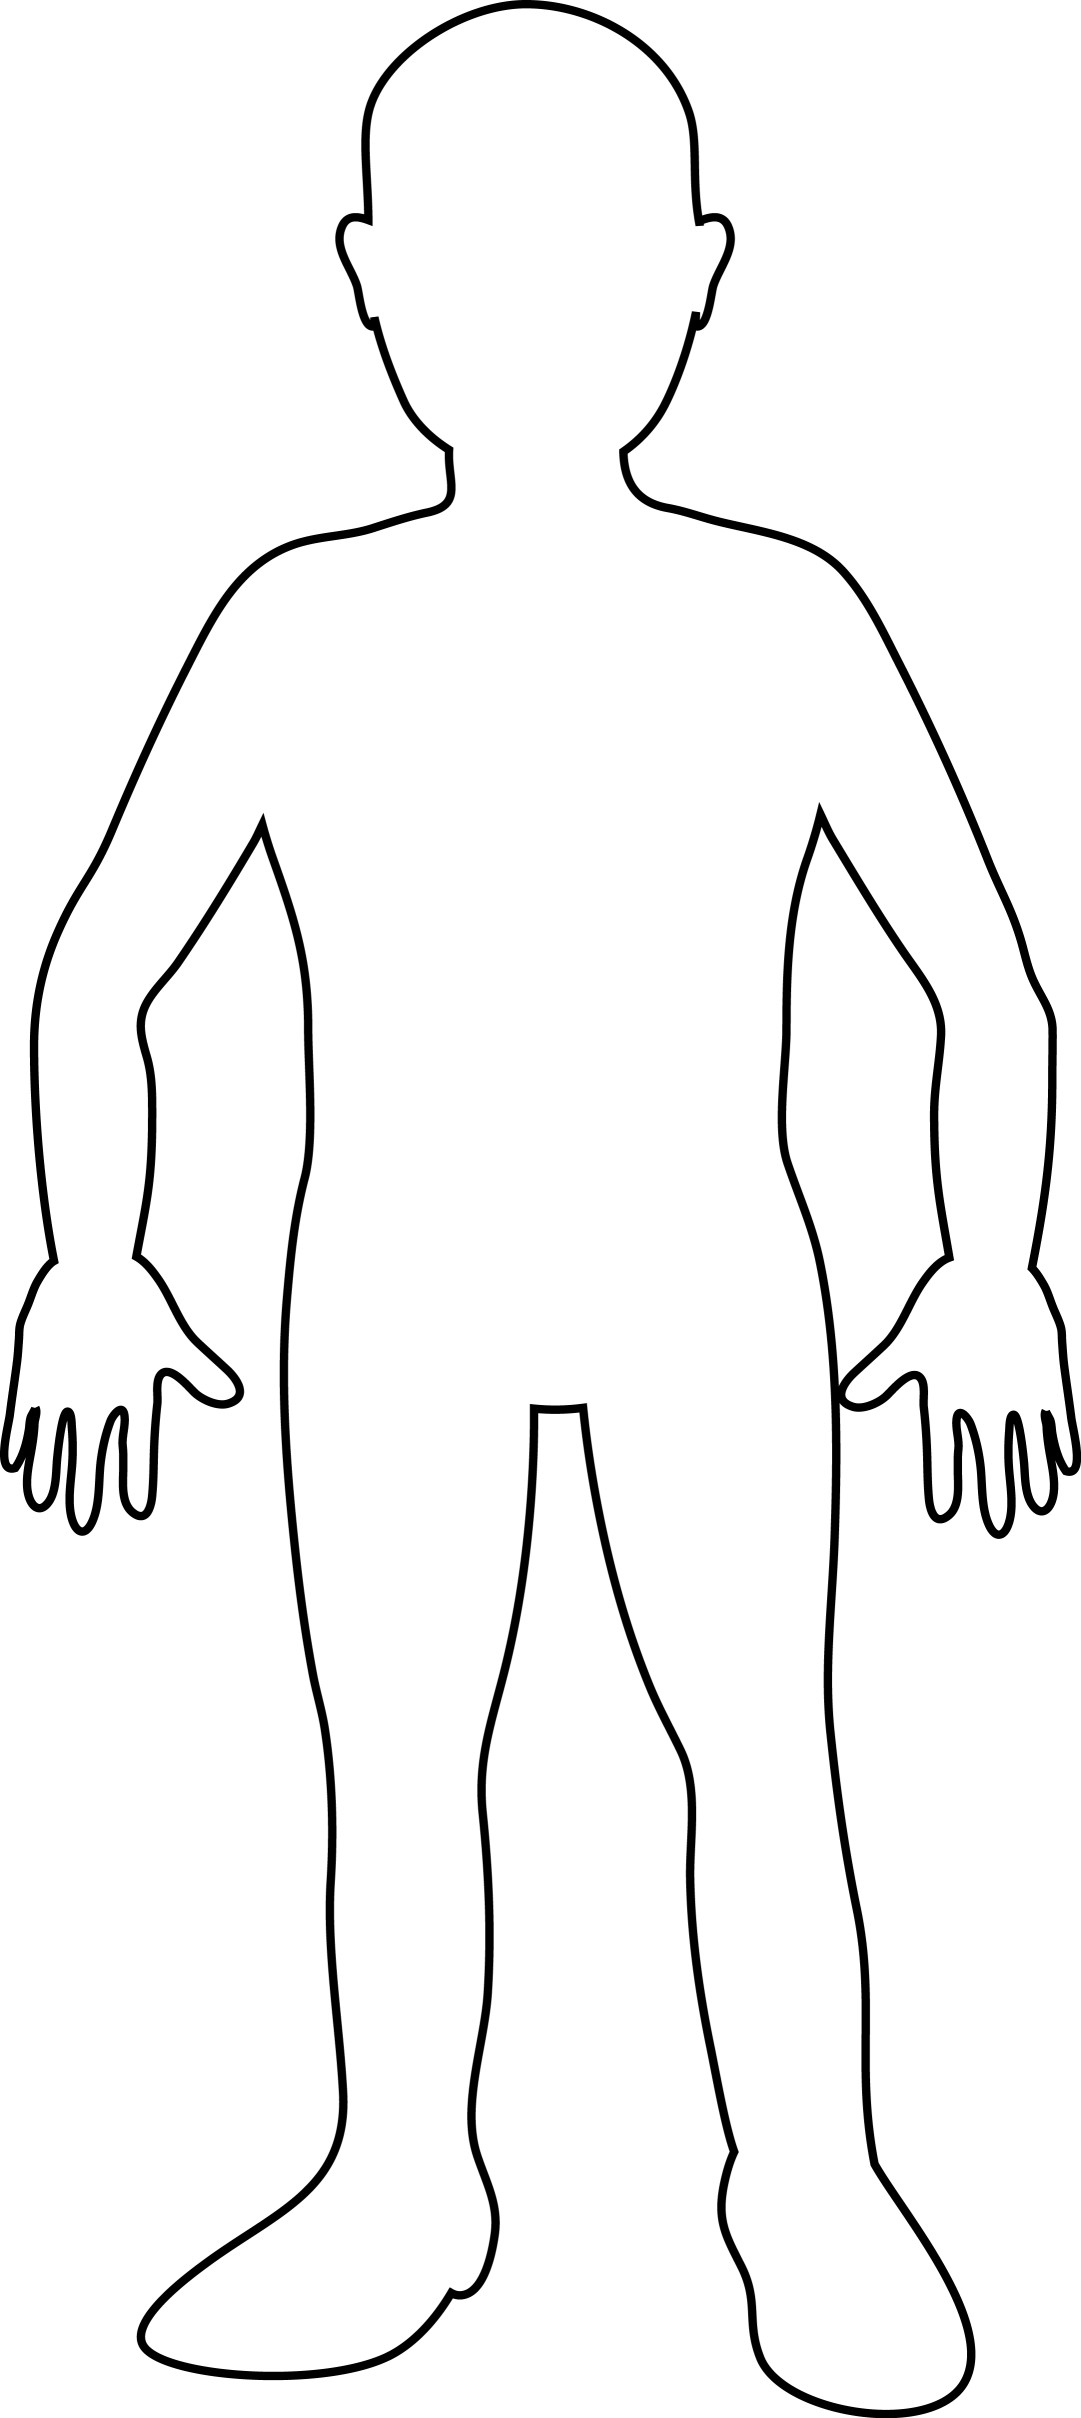 Printable Outline Of Person .-Printable Outline Of Person .-18